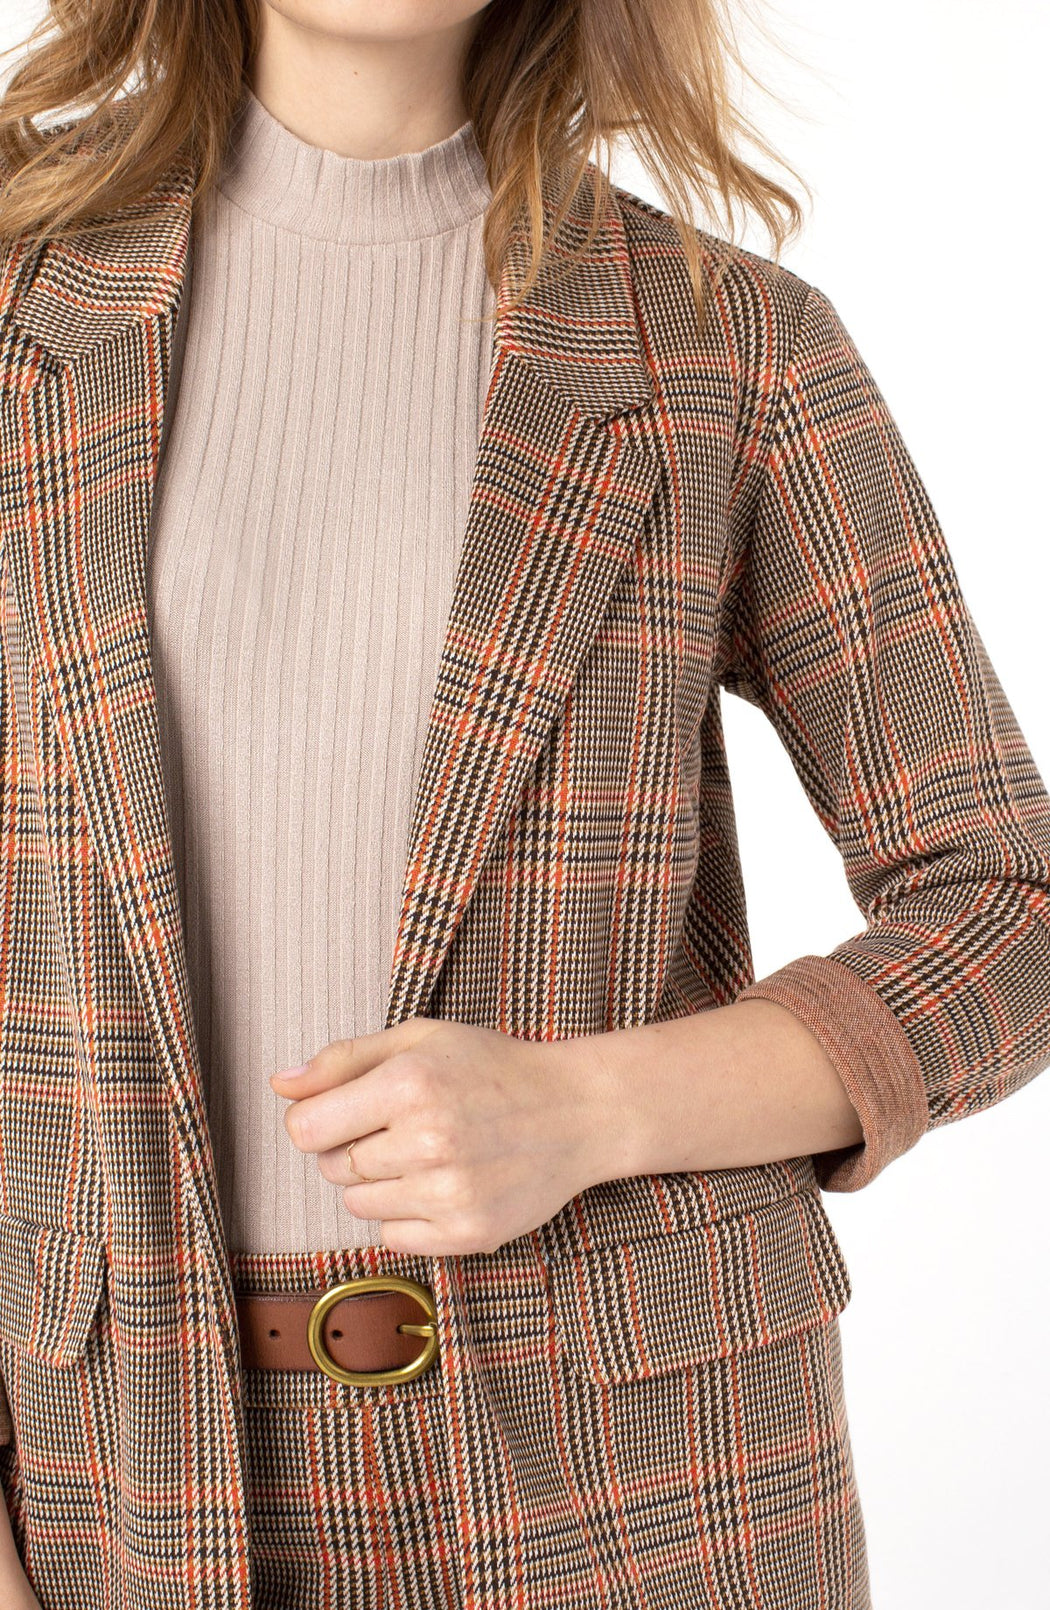 "Plaid perfection with a vintage feel!  This plaid boyfriend blazer is sophisticated and versatile from day or night! We are loving the neutral tones with a hint of color.   FEATURES:   28-1/2"" HPS Princess dart styling Two front flap pockets Sleek modern style and a relaxed fit"